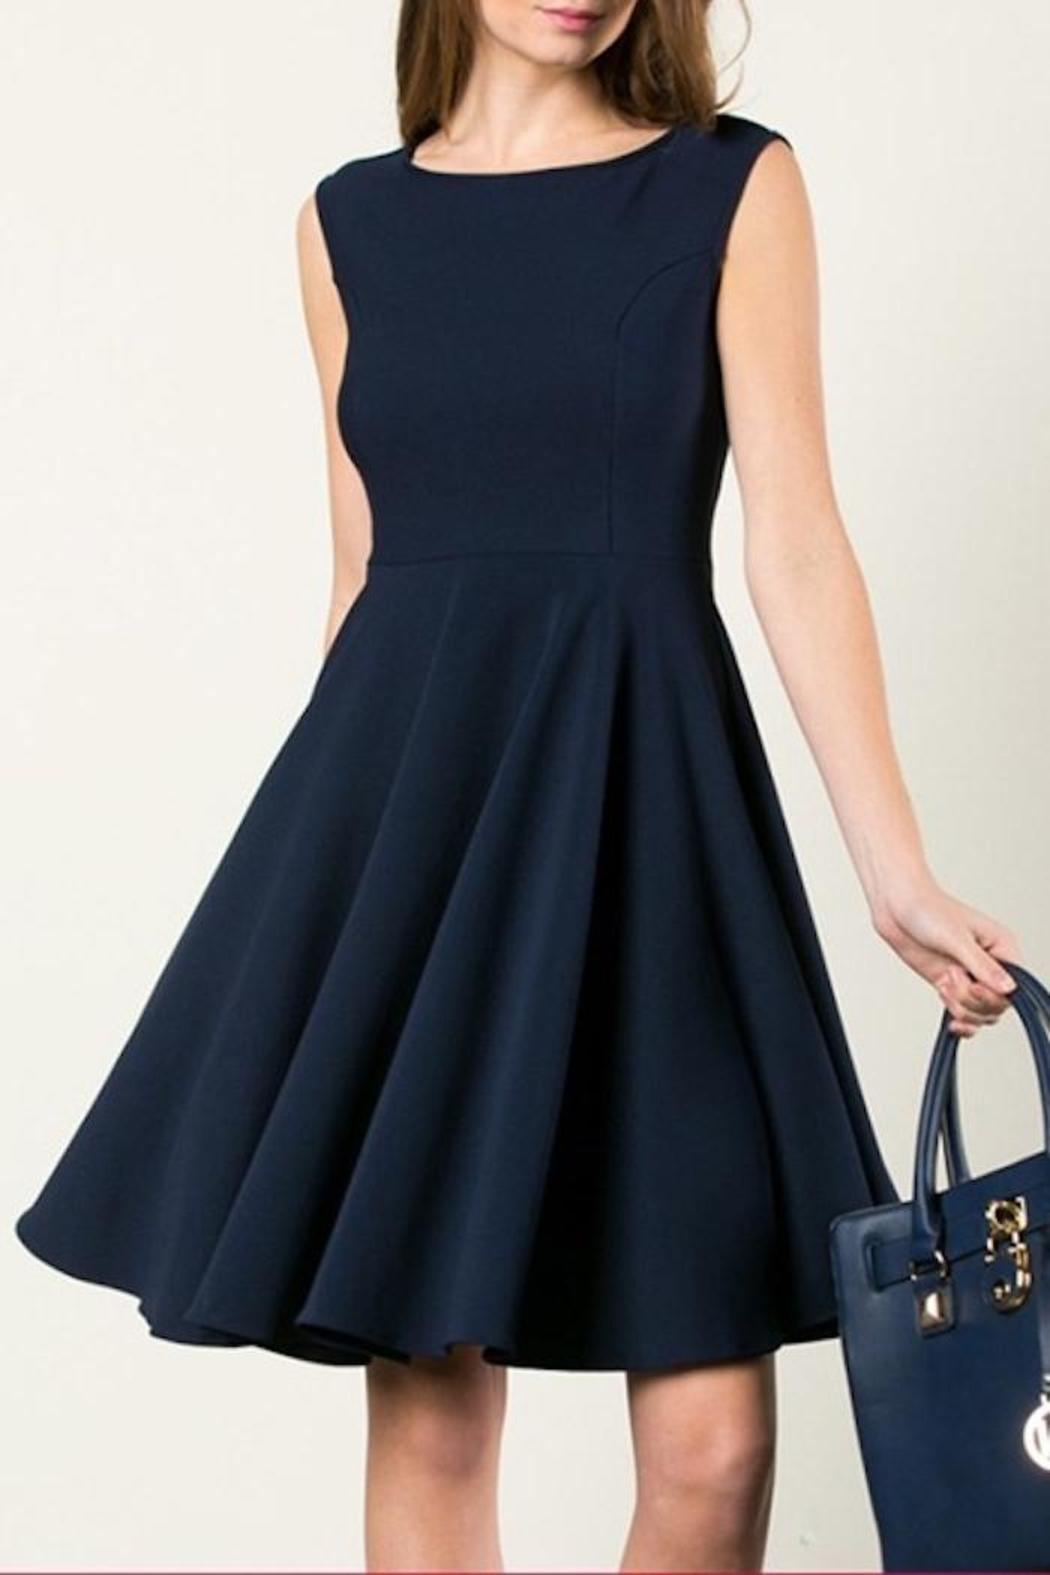 2033e6ac09d6 Aime Little Navy Dress from Minnesota by Apricot Lane - Duluth ...